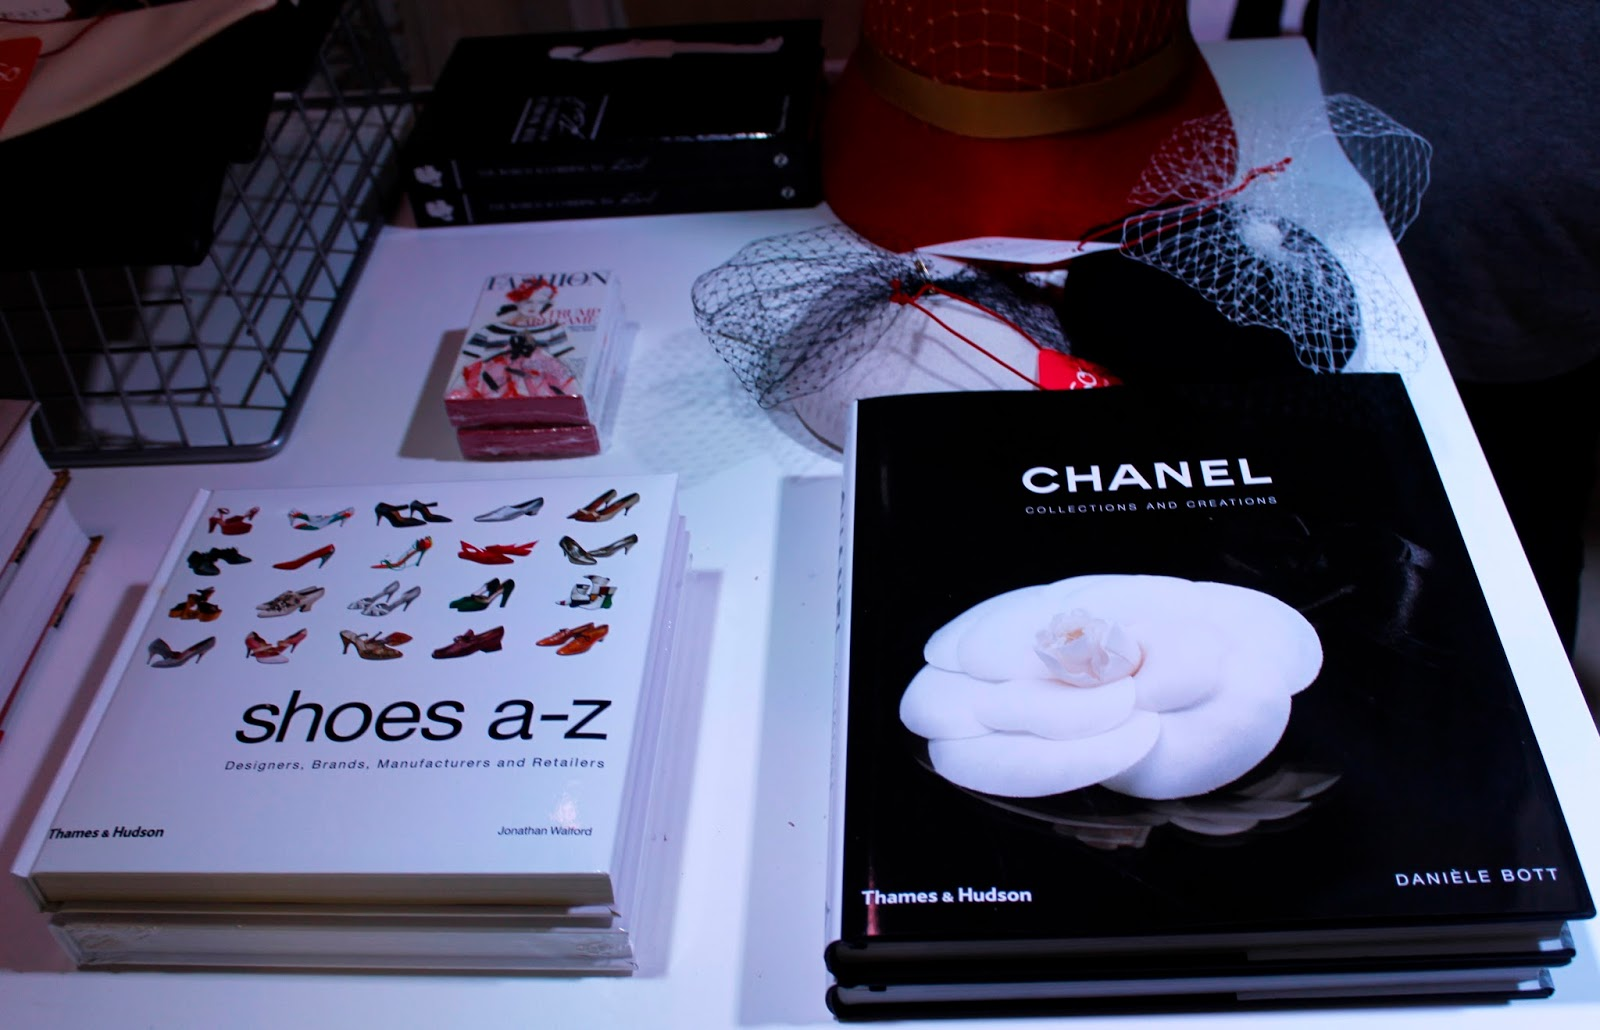 Chanel, Shoes A-Z Book